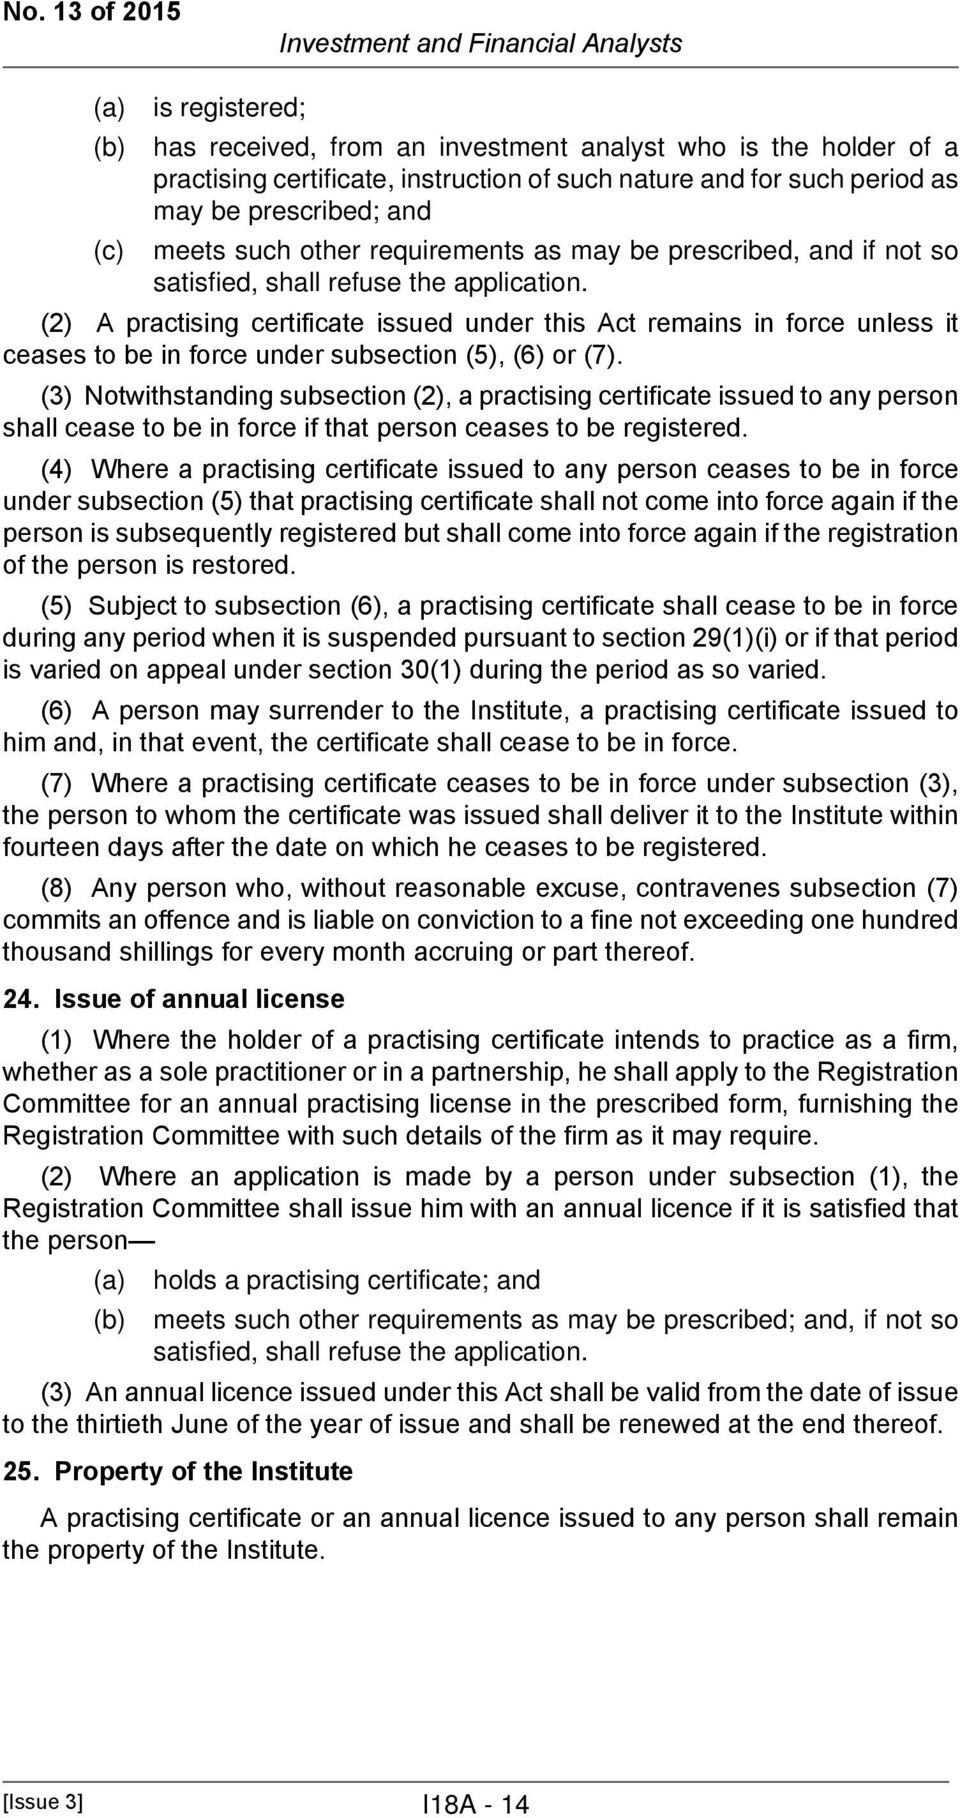 (2) A practising certificate issued under this Act remains in force unless it ceases to be in force under subsection (5), (6) or (7).